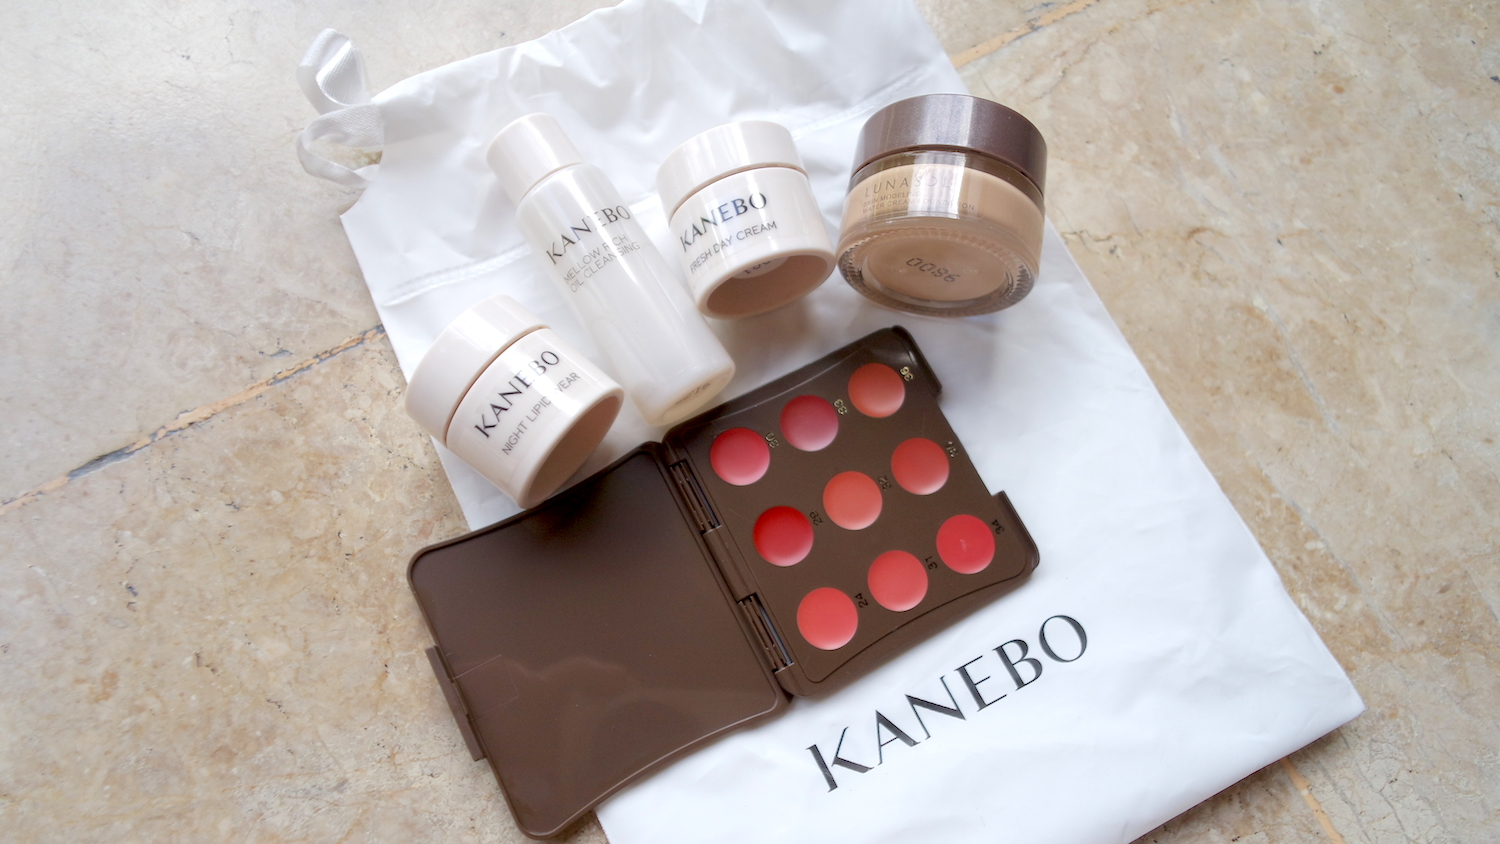 Kanebo and Lunasol Glow Kit, PHP 700 / 9g water cream foundation, lip sample palette, 10ml cleanser, 2.8ml day cream, 2.8ml night lipid wear